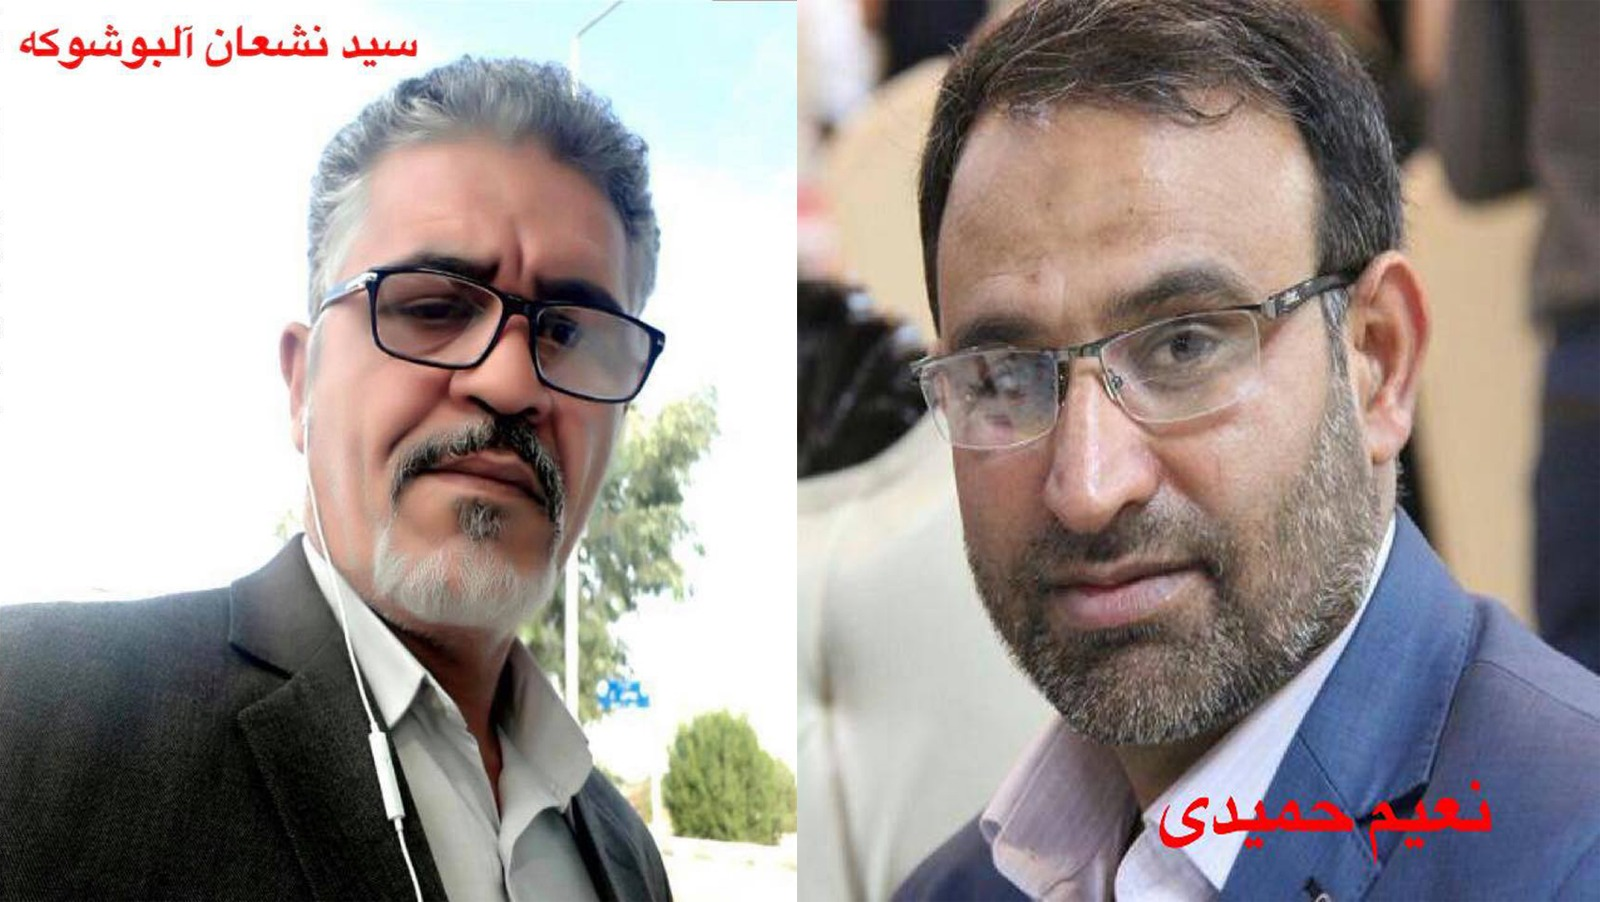 Tow Ahwazi journalists Summoned to Court  for Criticising the Performance of Department of Education